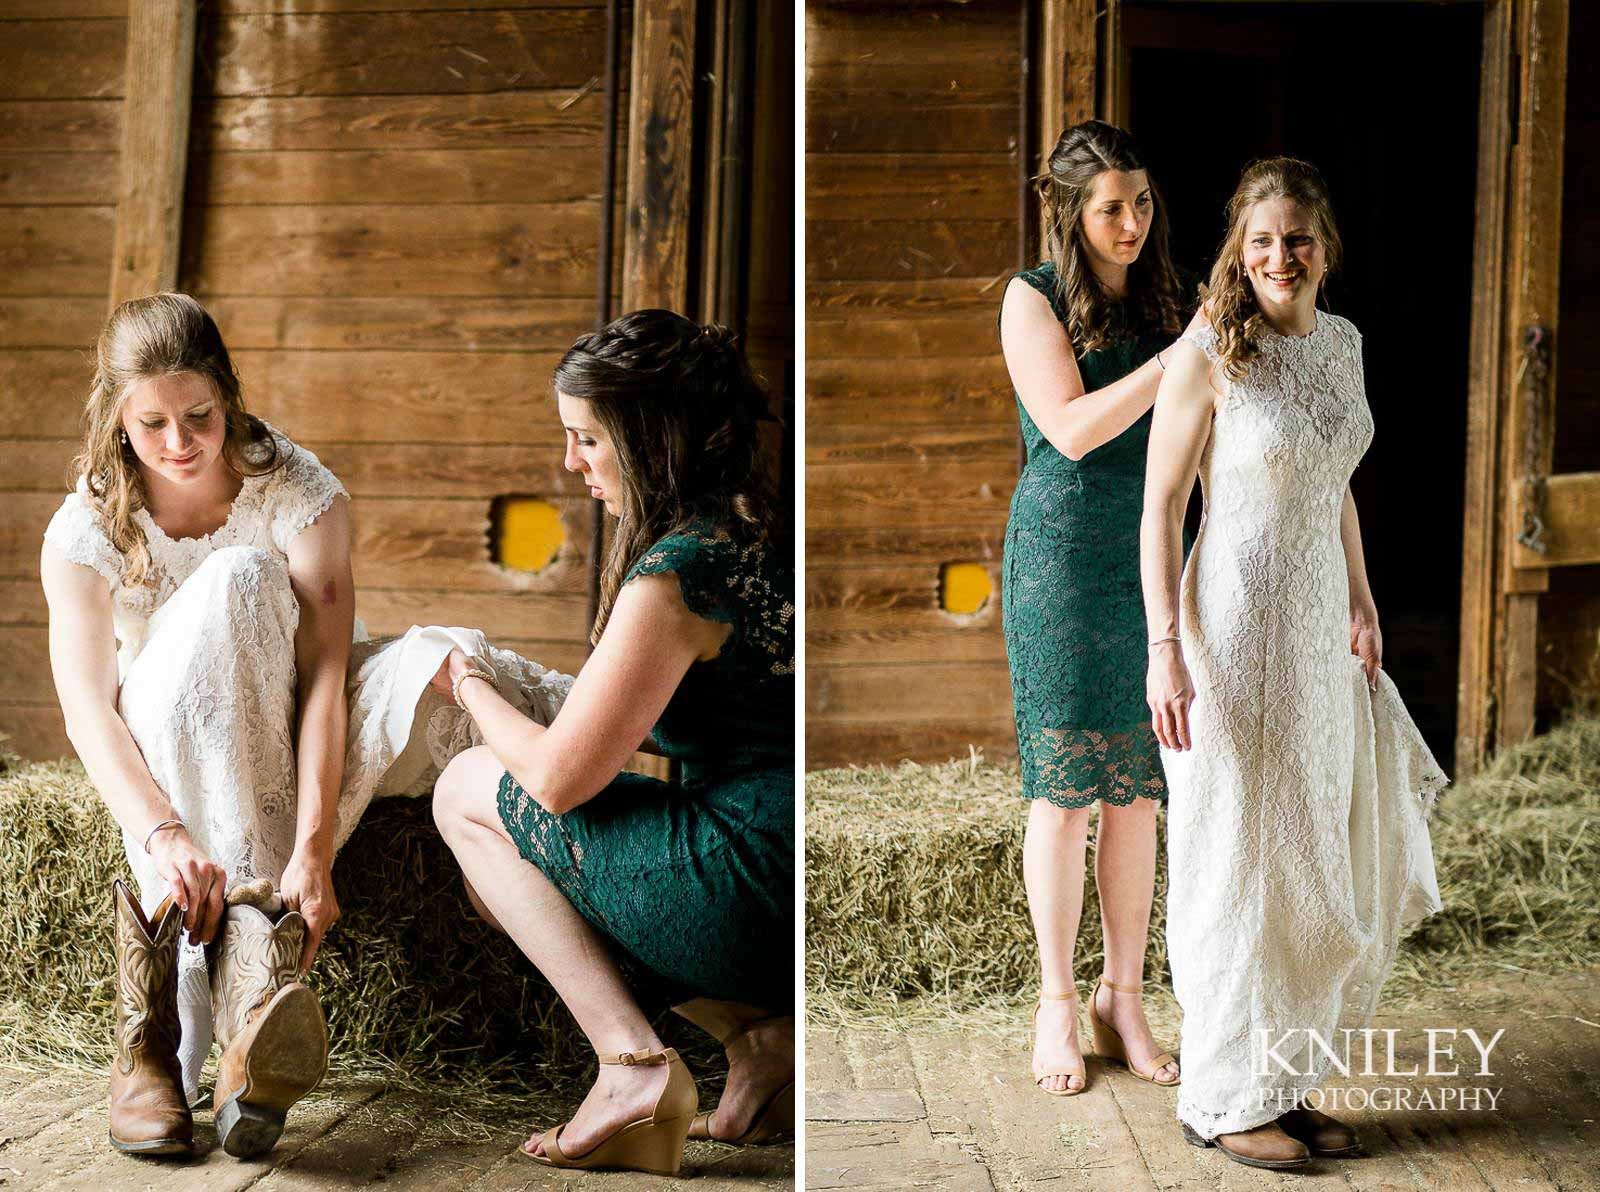 06-Western-New-York-farm-wedding-Kniley-Photography.jpg